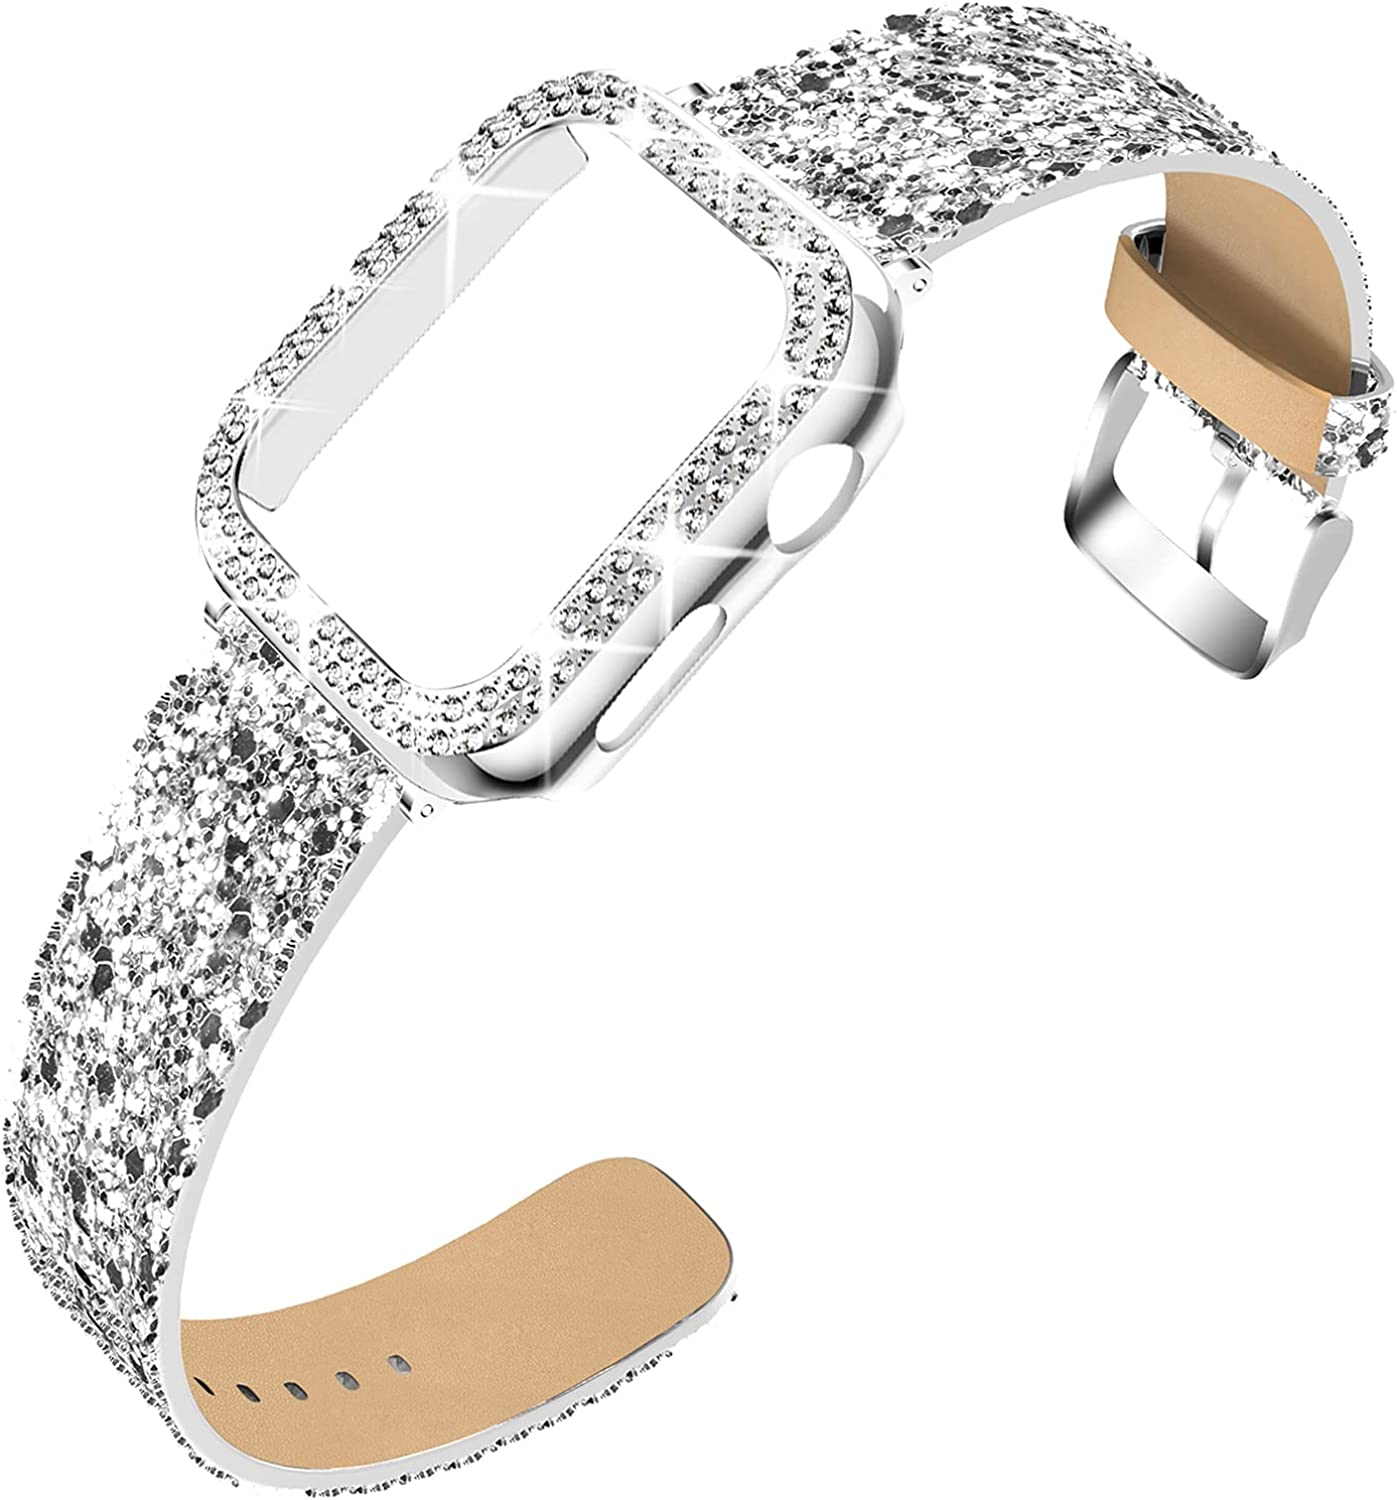 DABAOZA Compatible for Apple Watch Band 38mm 42mm with Case, Bling Women Glitter Leather Strap Sparkle Replacement Wristband with Dressy Crystal Bumper Cover for iWatch Series 3 2 1